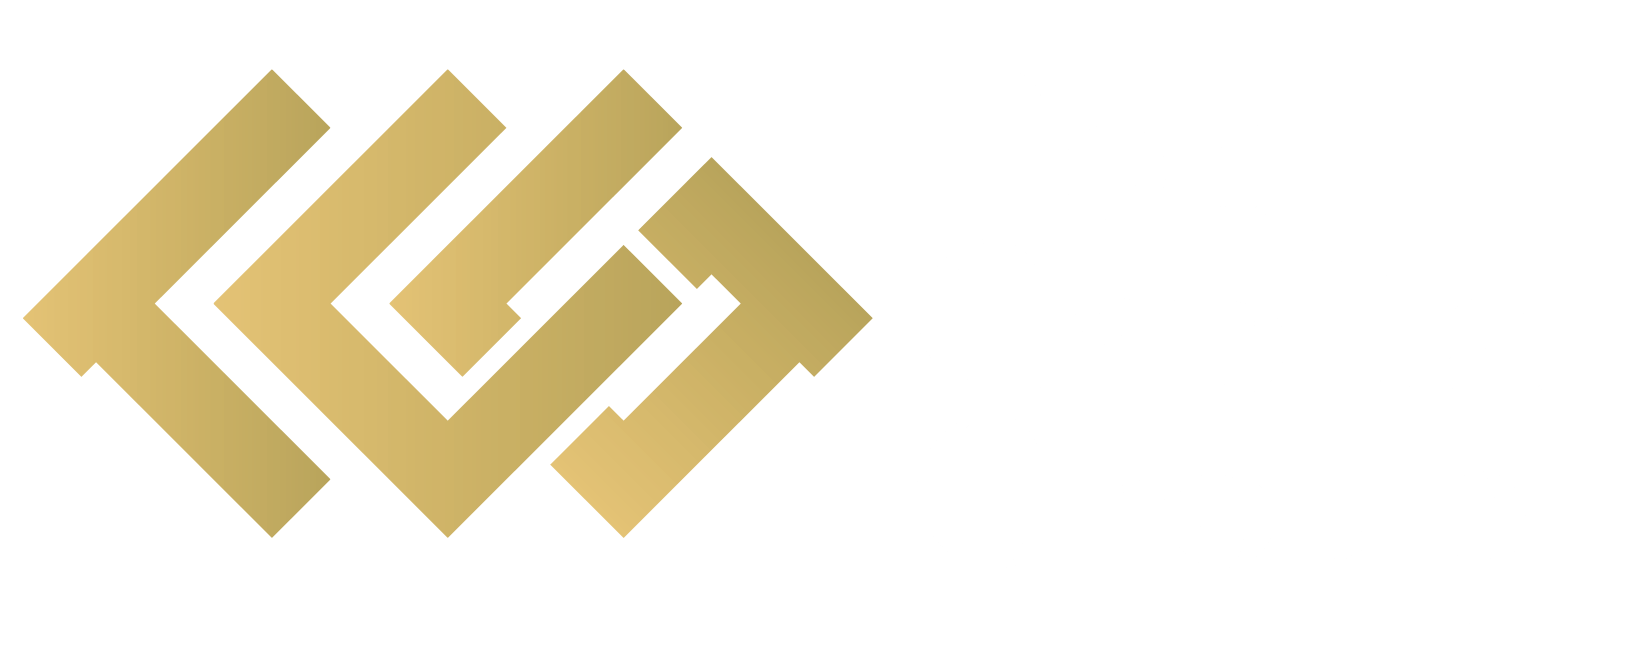 Court Collaboration - TGC